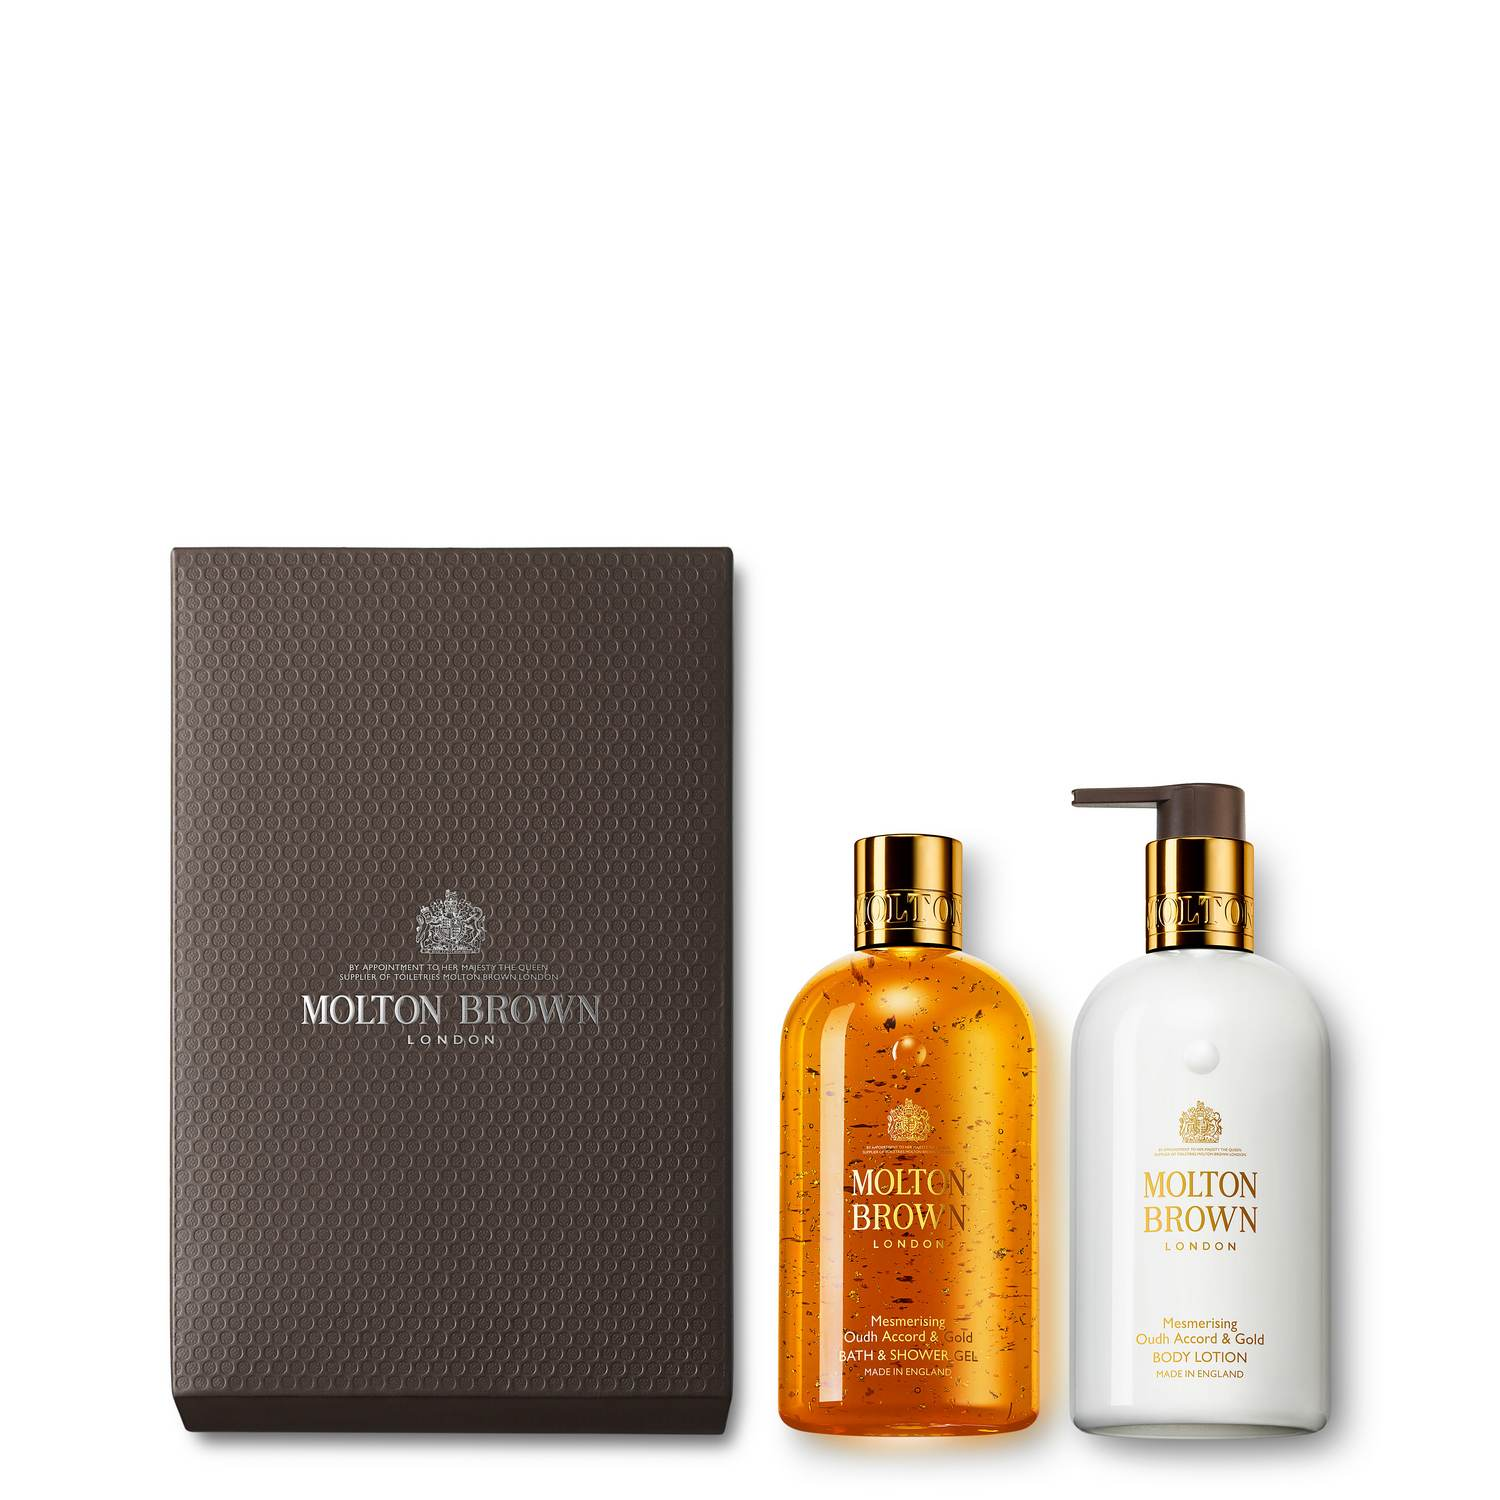 Mesmerising Oudh Accord & Gold Shower Gel & Lotion Gift Set by Molton Brown